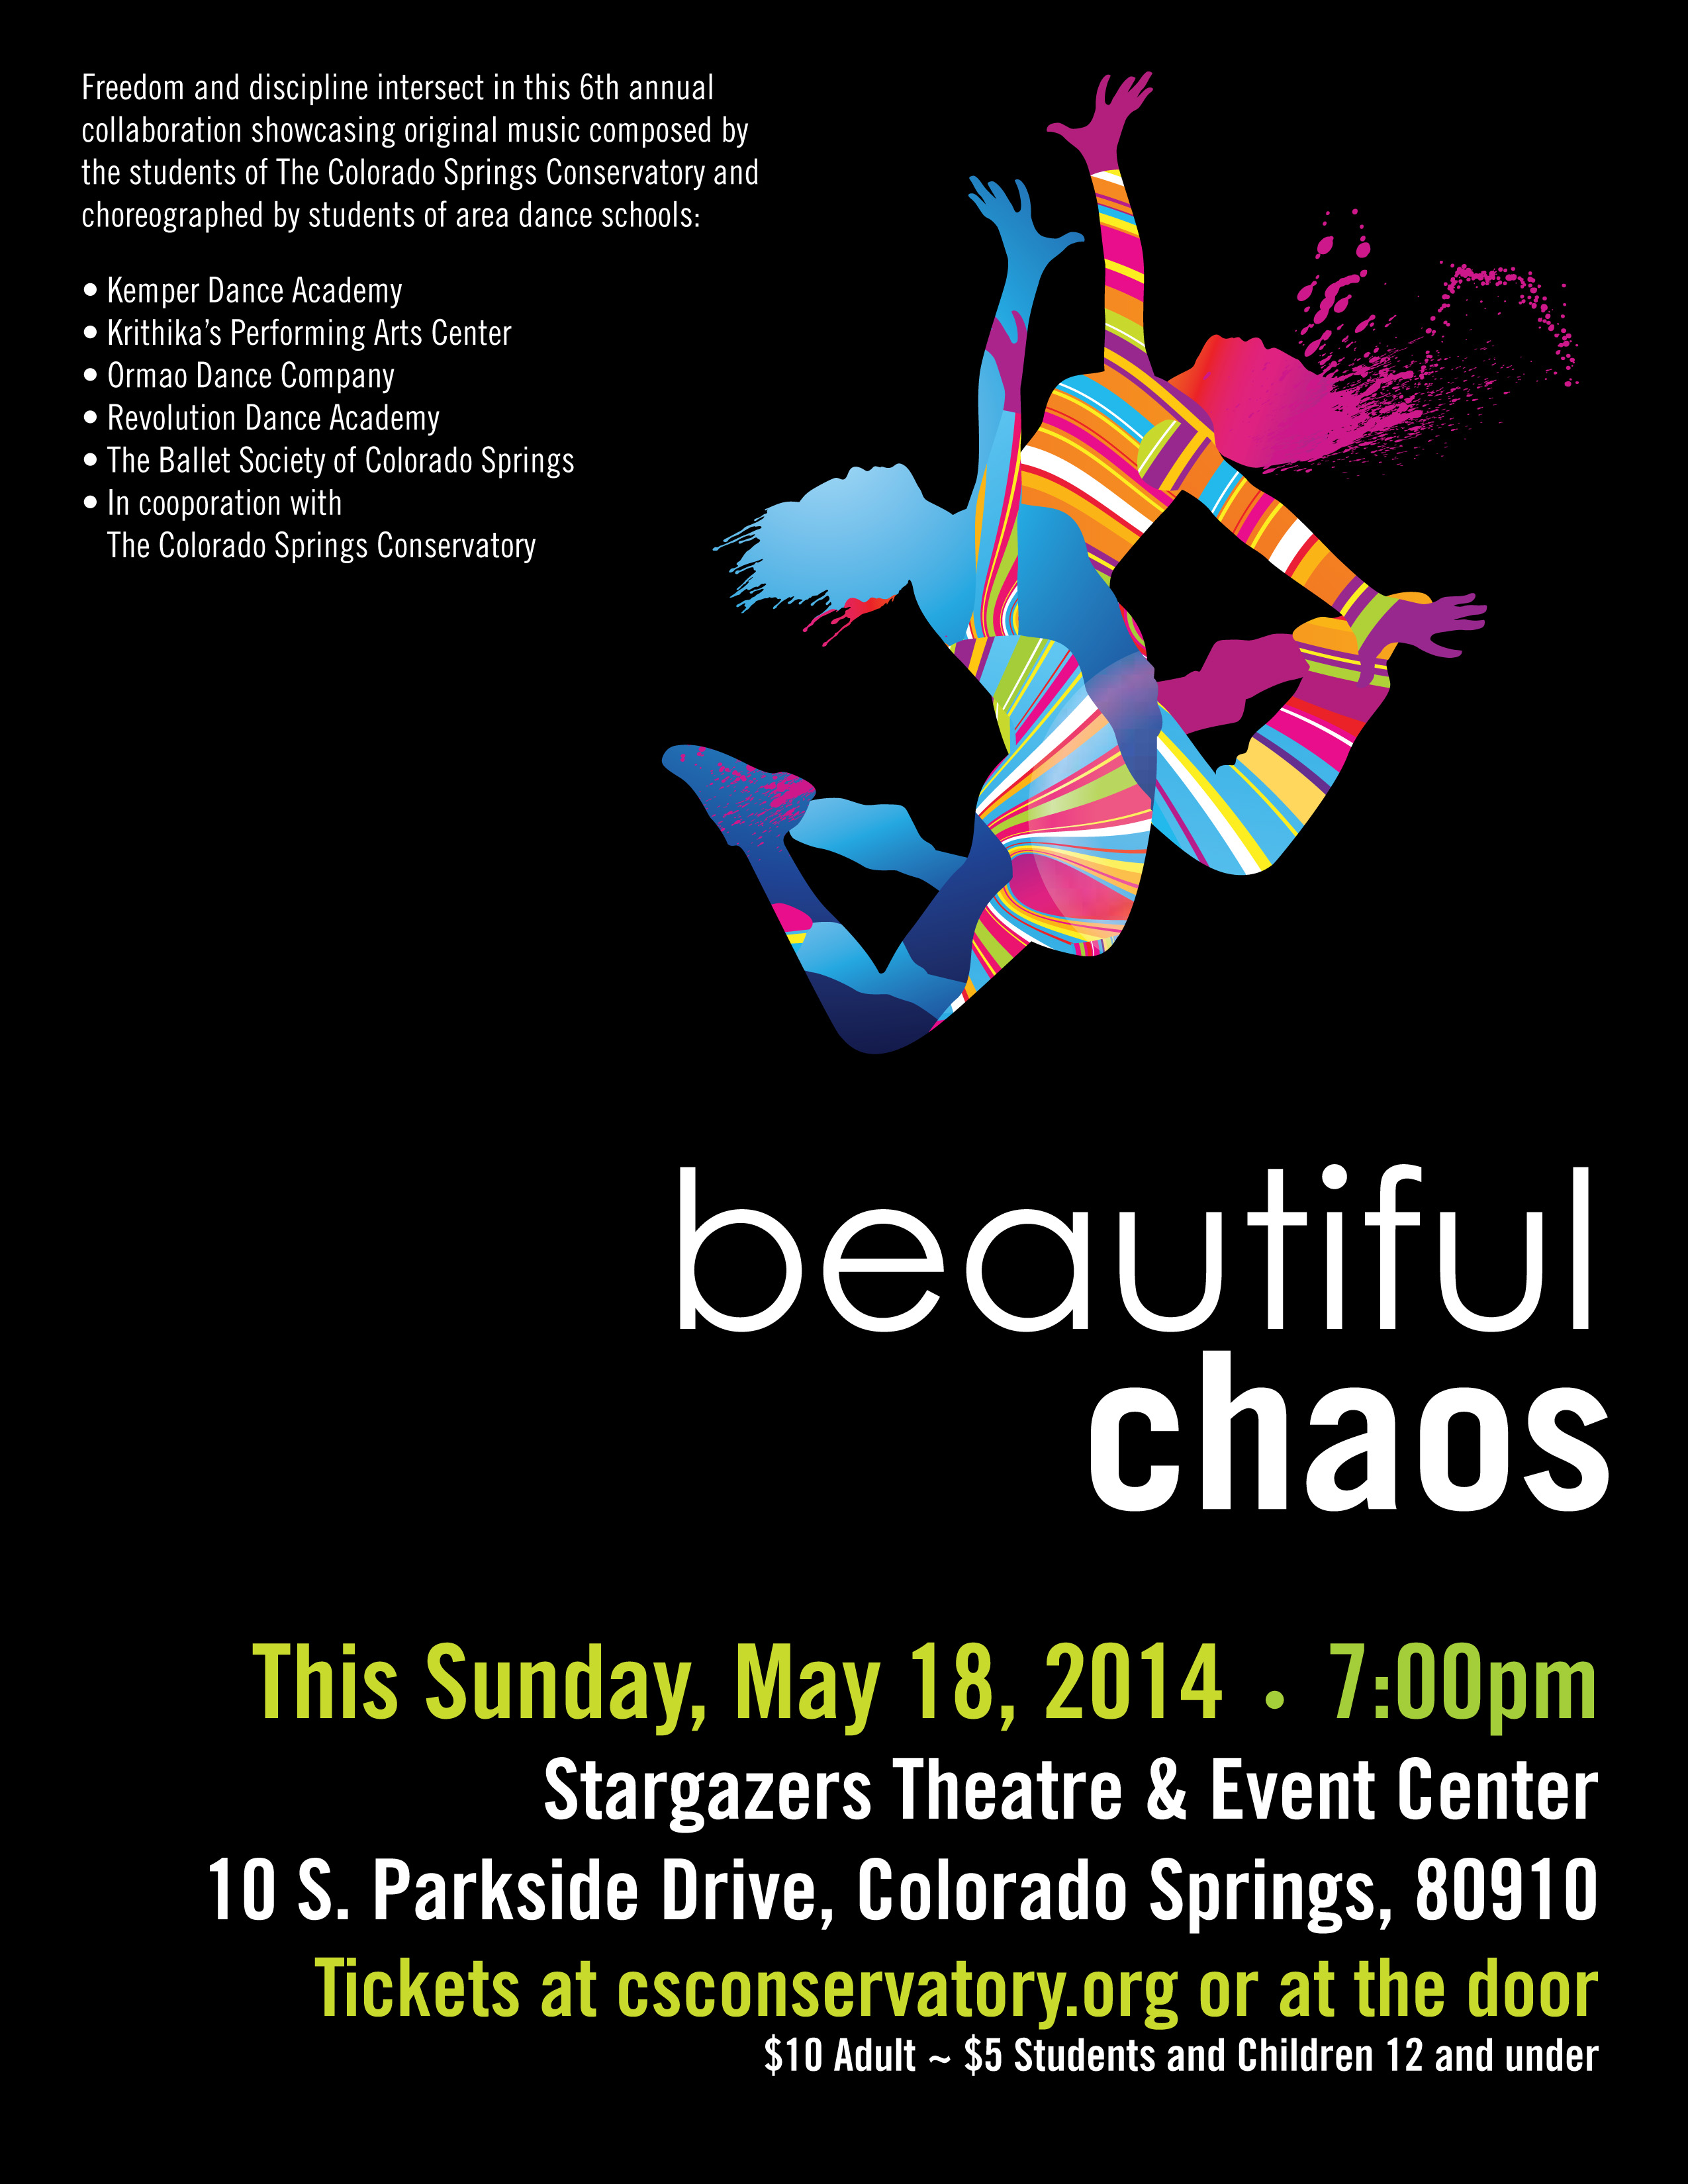 2014-5-18 Beautiful Chaos Flyer_rev2B wo CSC logo